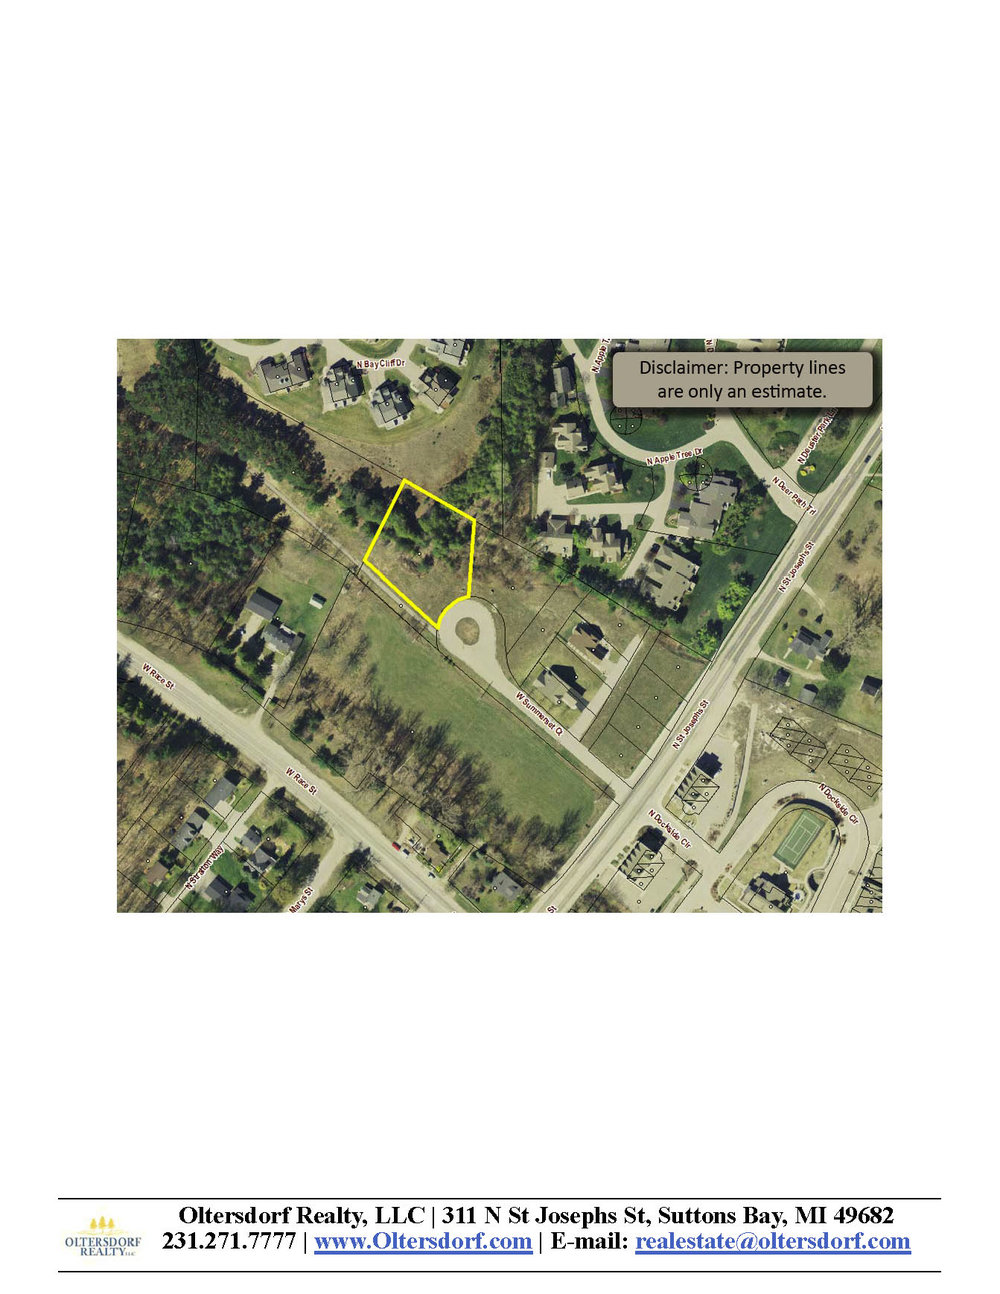 254 W Summerset Court, Village of Suttons Bay vacant lot for sale by Oltersdorf Realty, Suttons Bay Realtors - Marketing Packet (5).jpg